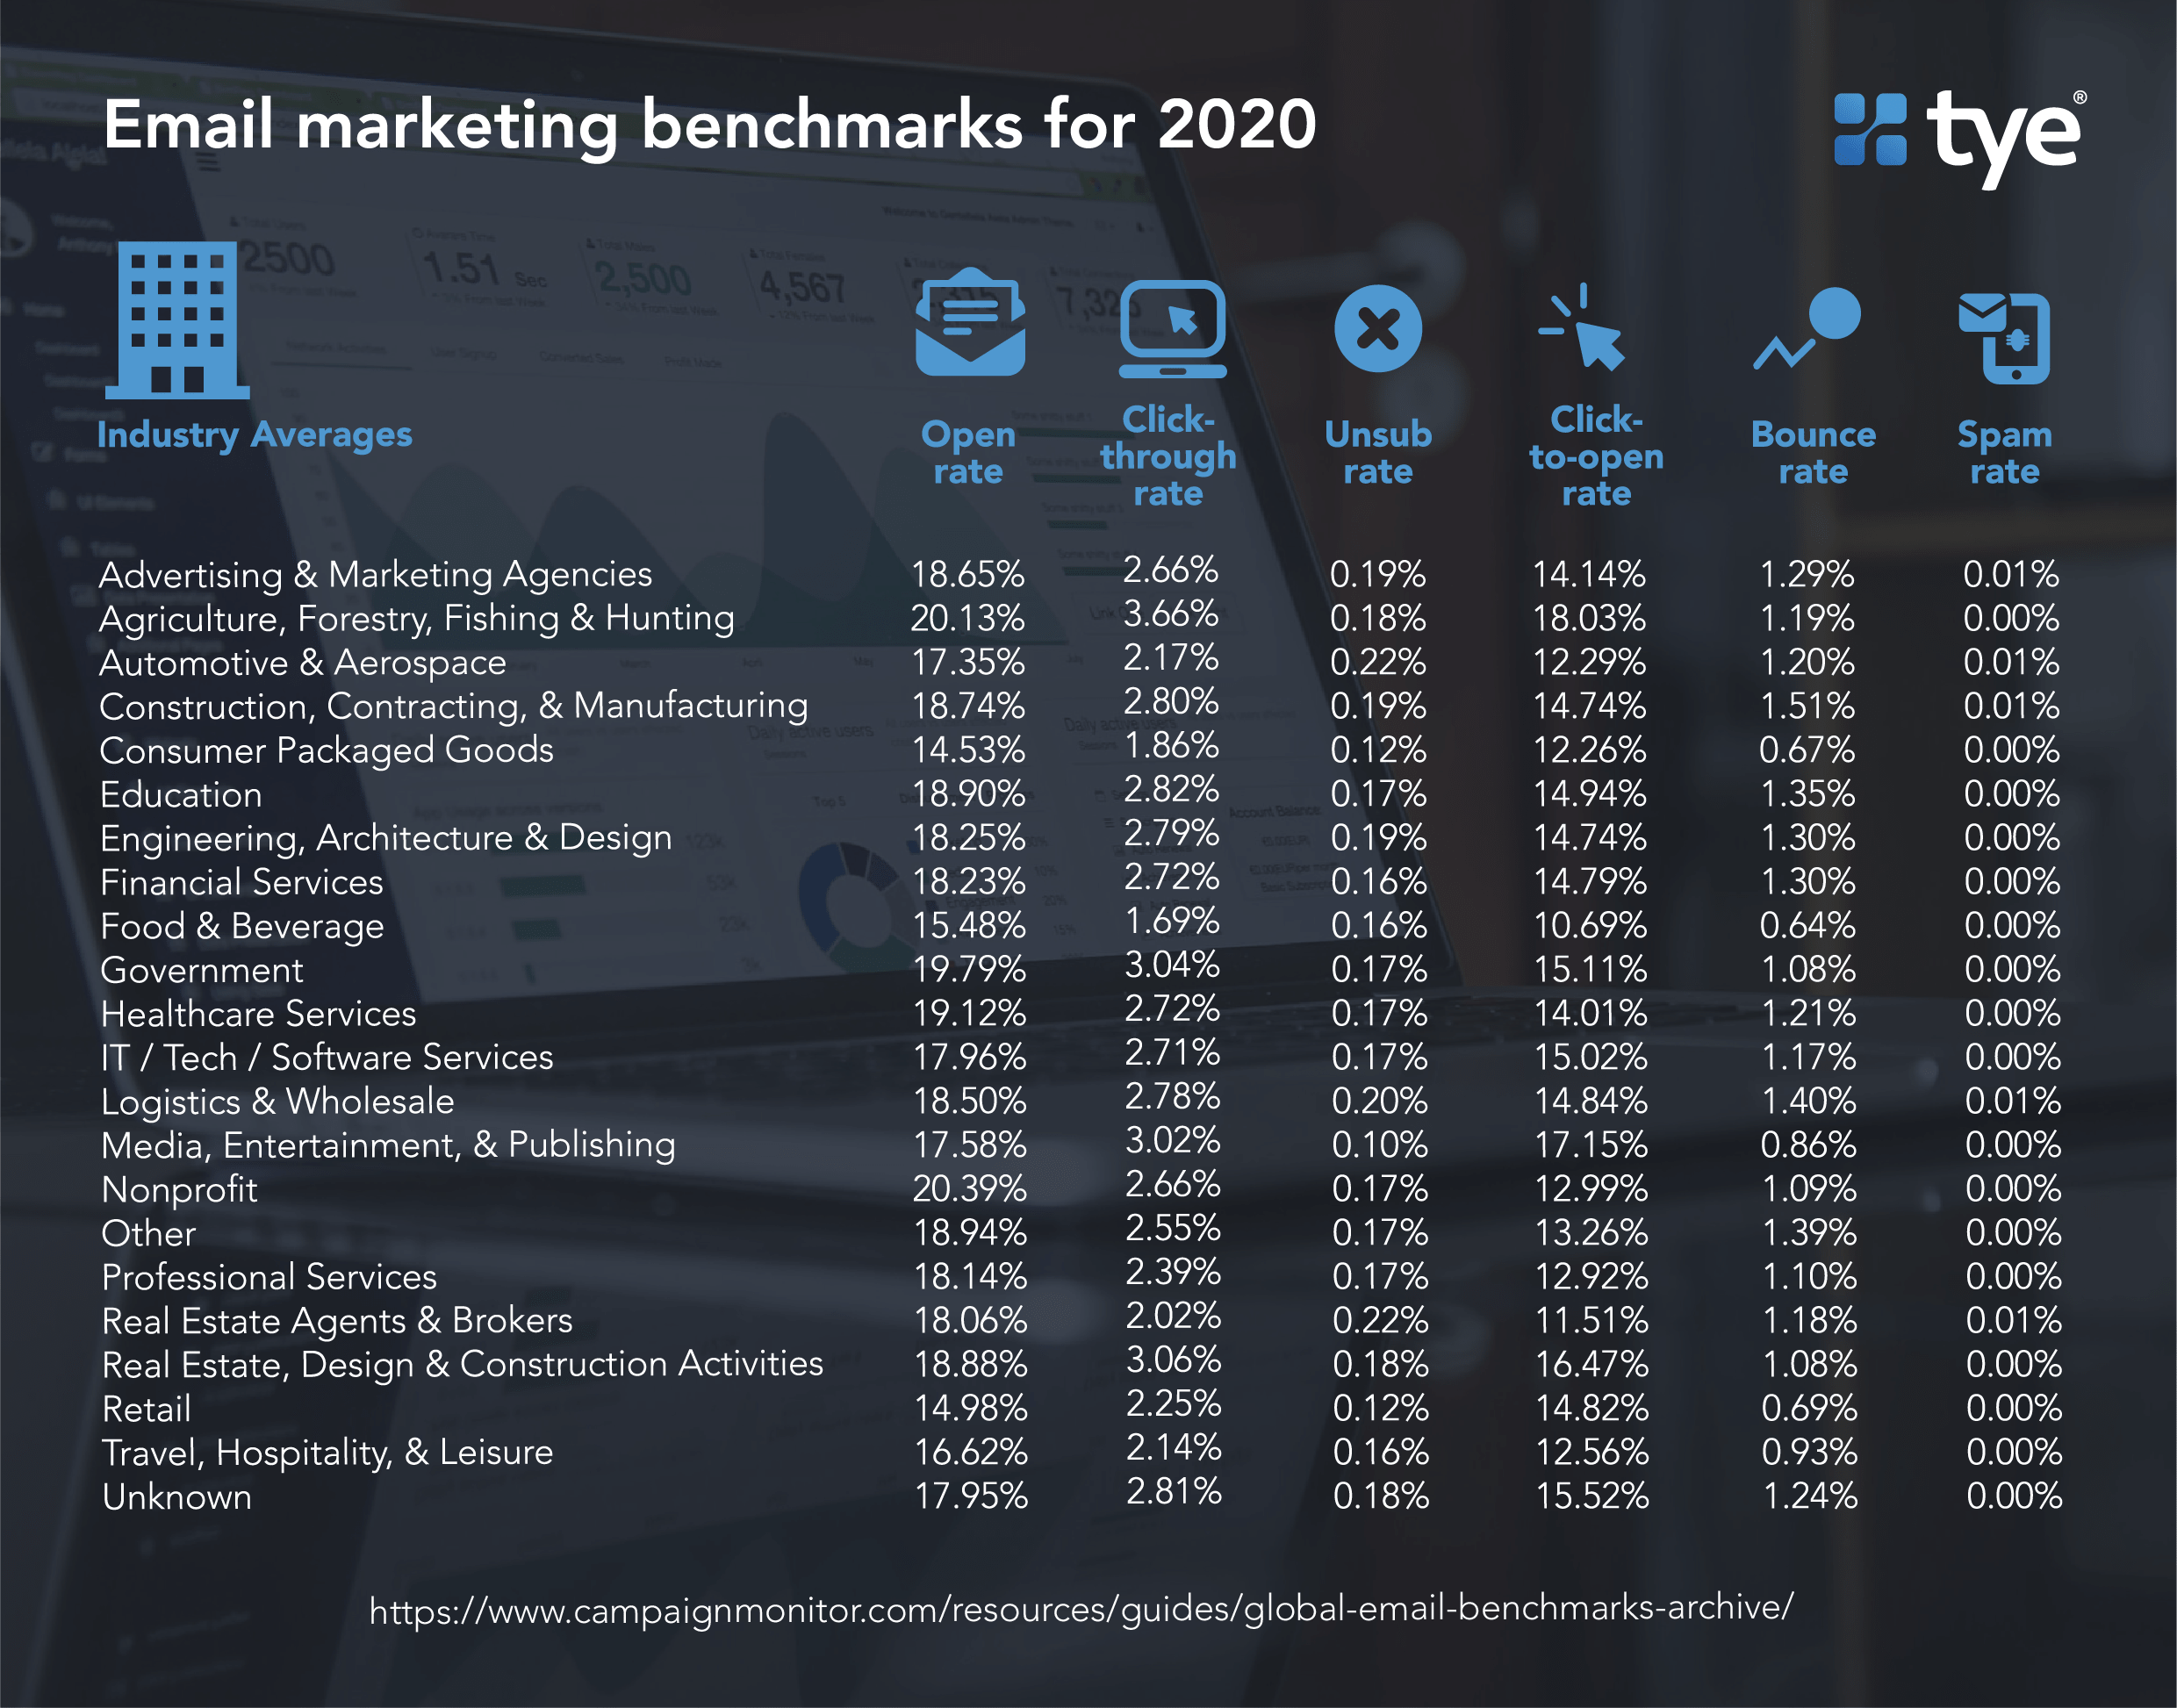 email marketing benchmarks 2020